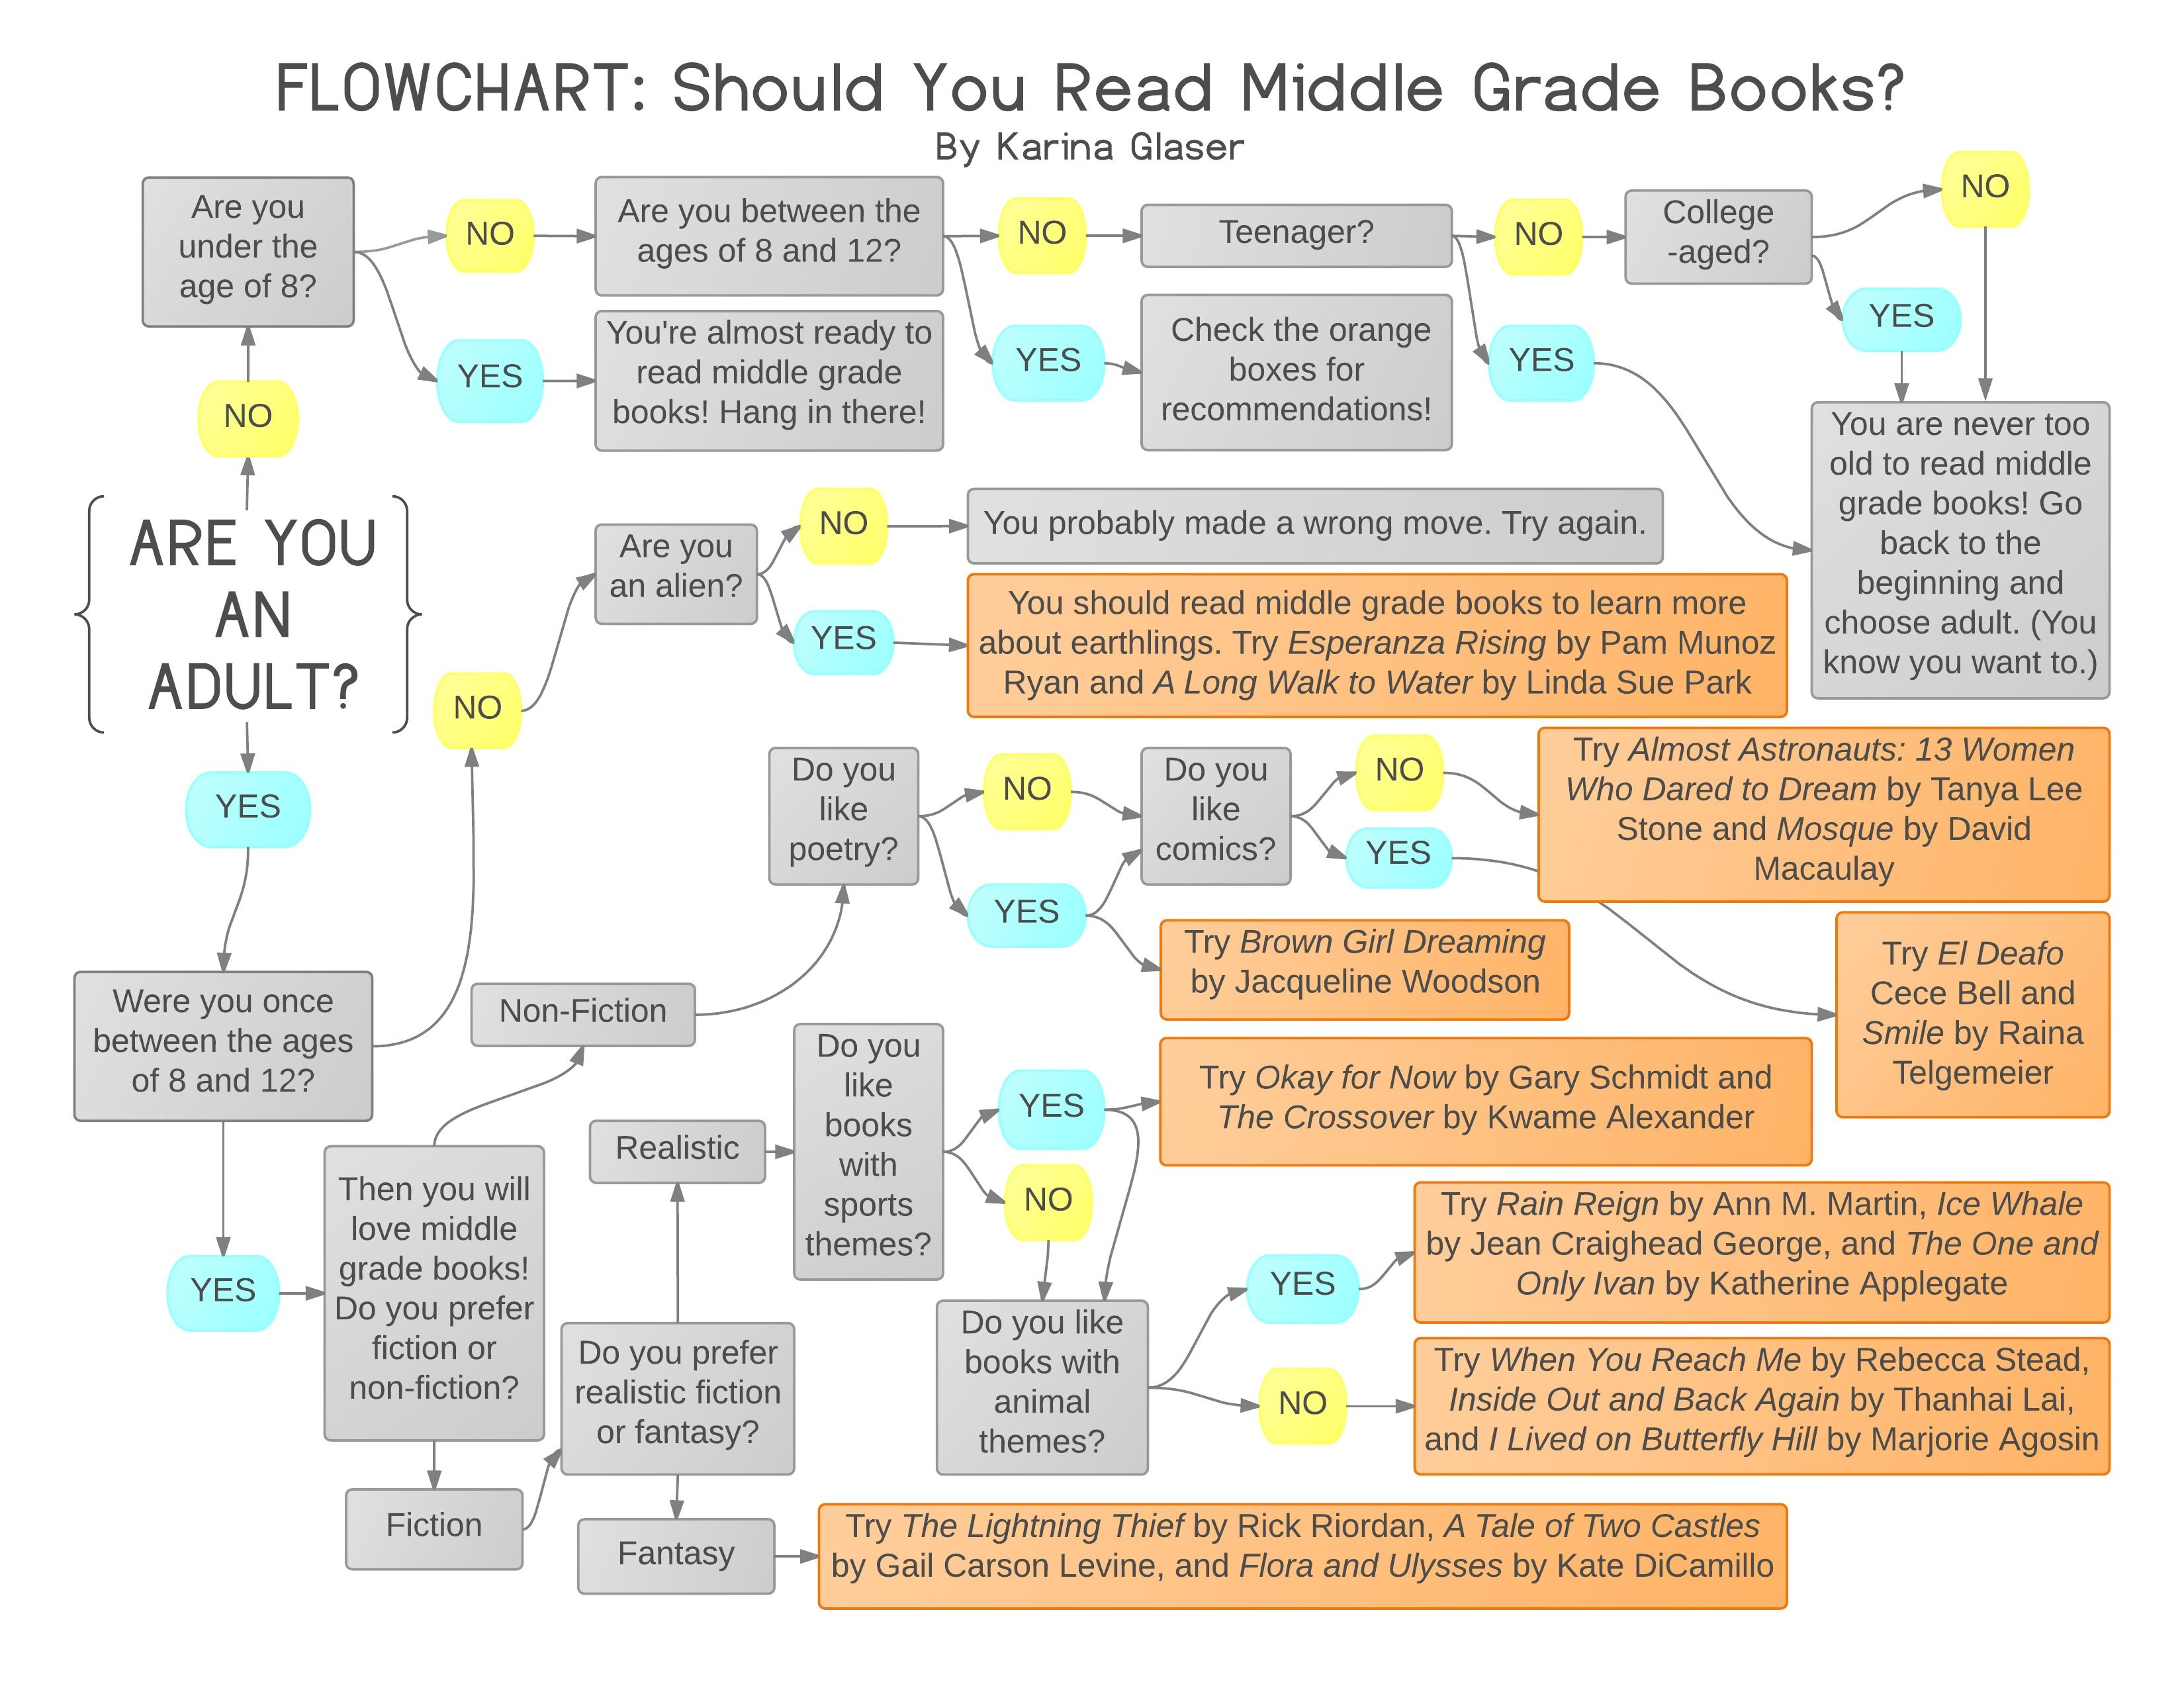 Should You Read Middle Grade Books  A Flowchart is part of Middle grade books, Middle grades, Teaching literature, Reading analysis, Reading, Books - Should you be reading middle grade books  Check out this flowchart and see (and get recommendations!)